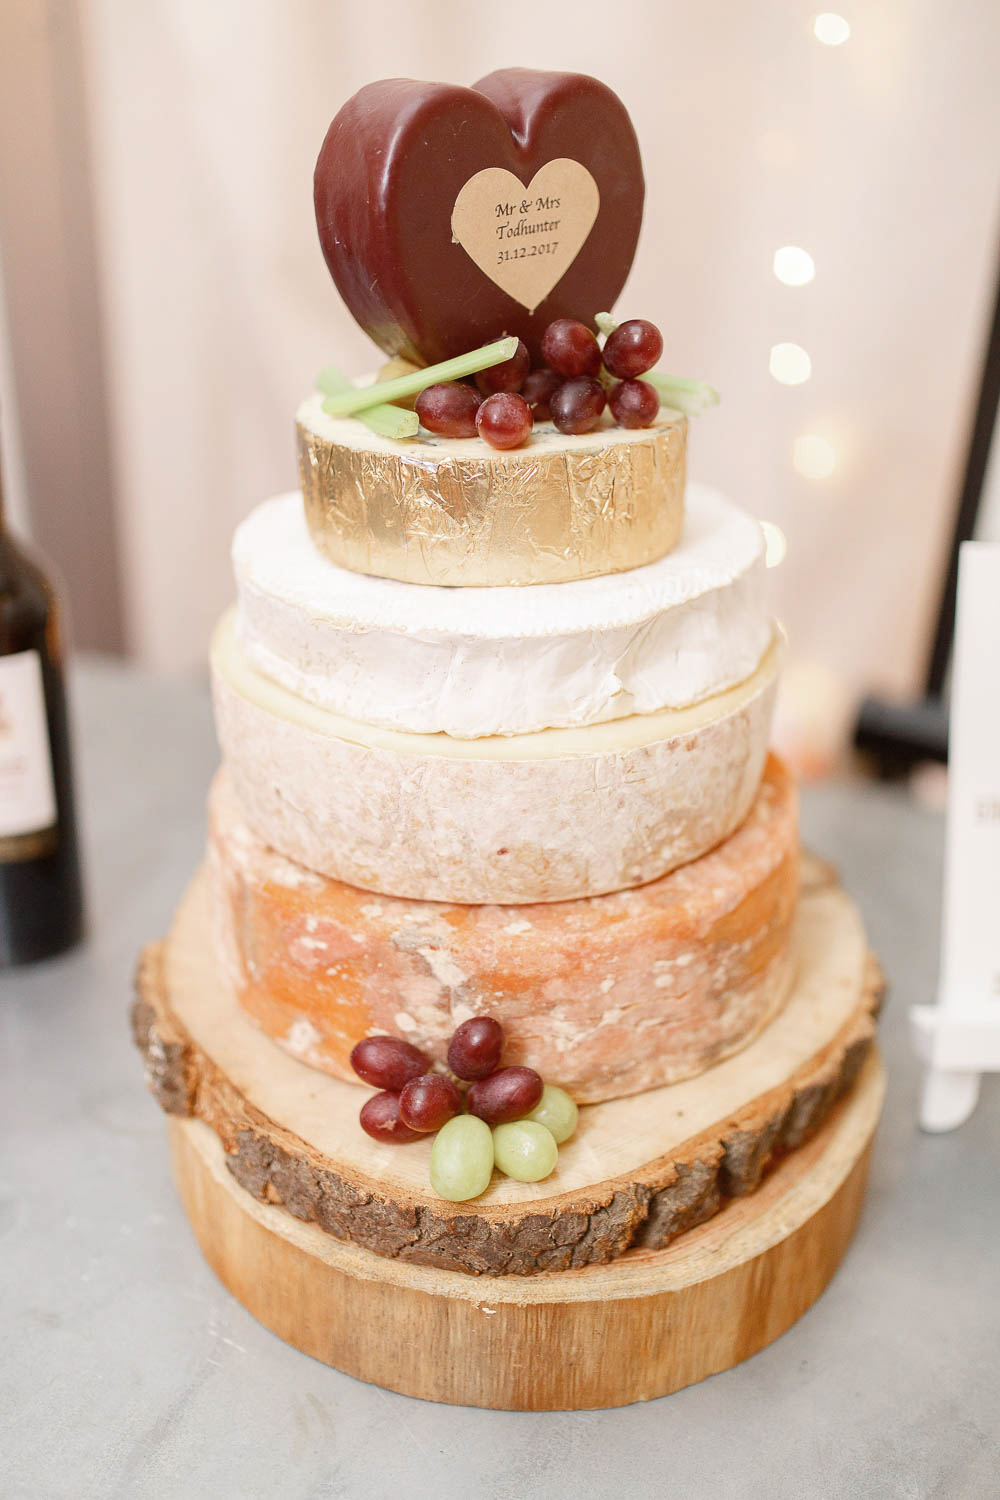 A cheese tower was a fresh take on a traditional wedding cake, and there were large lemon pies to warm everyone up